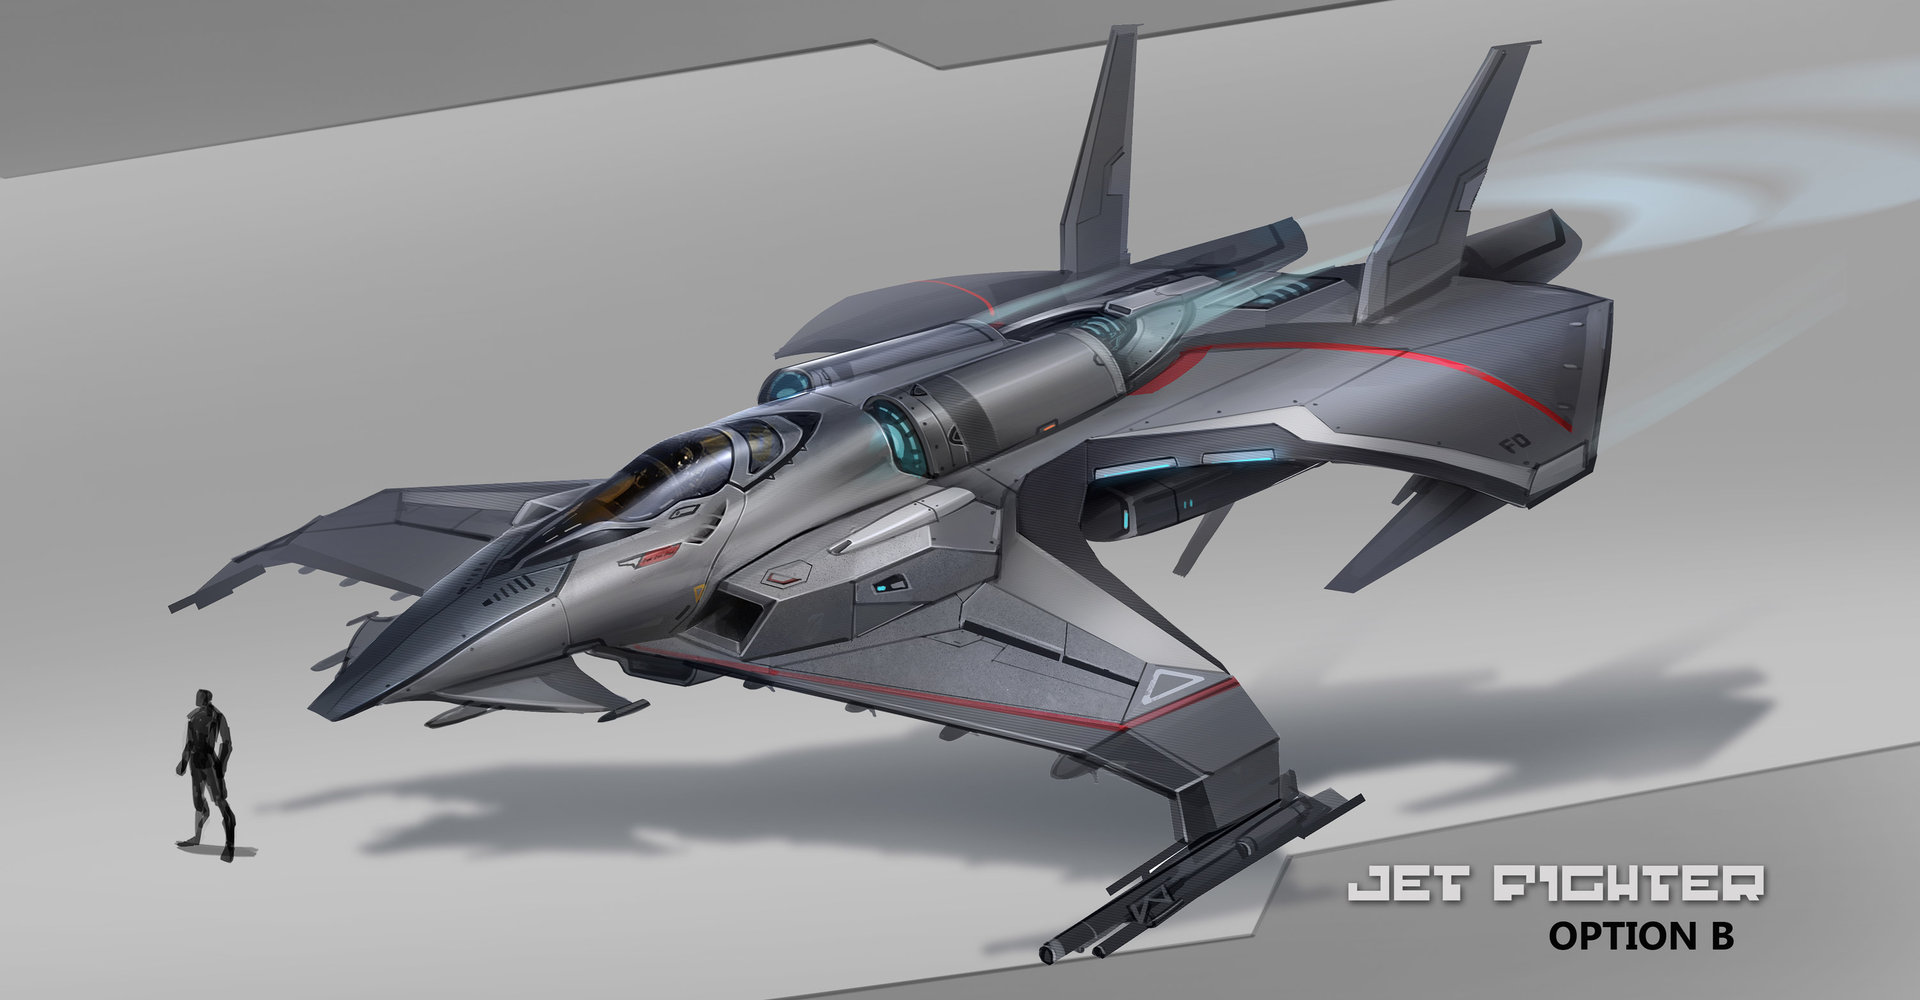 Jeremy chong jet fighter option b